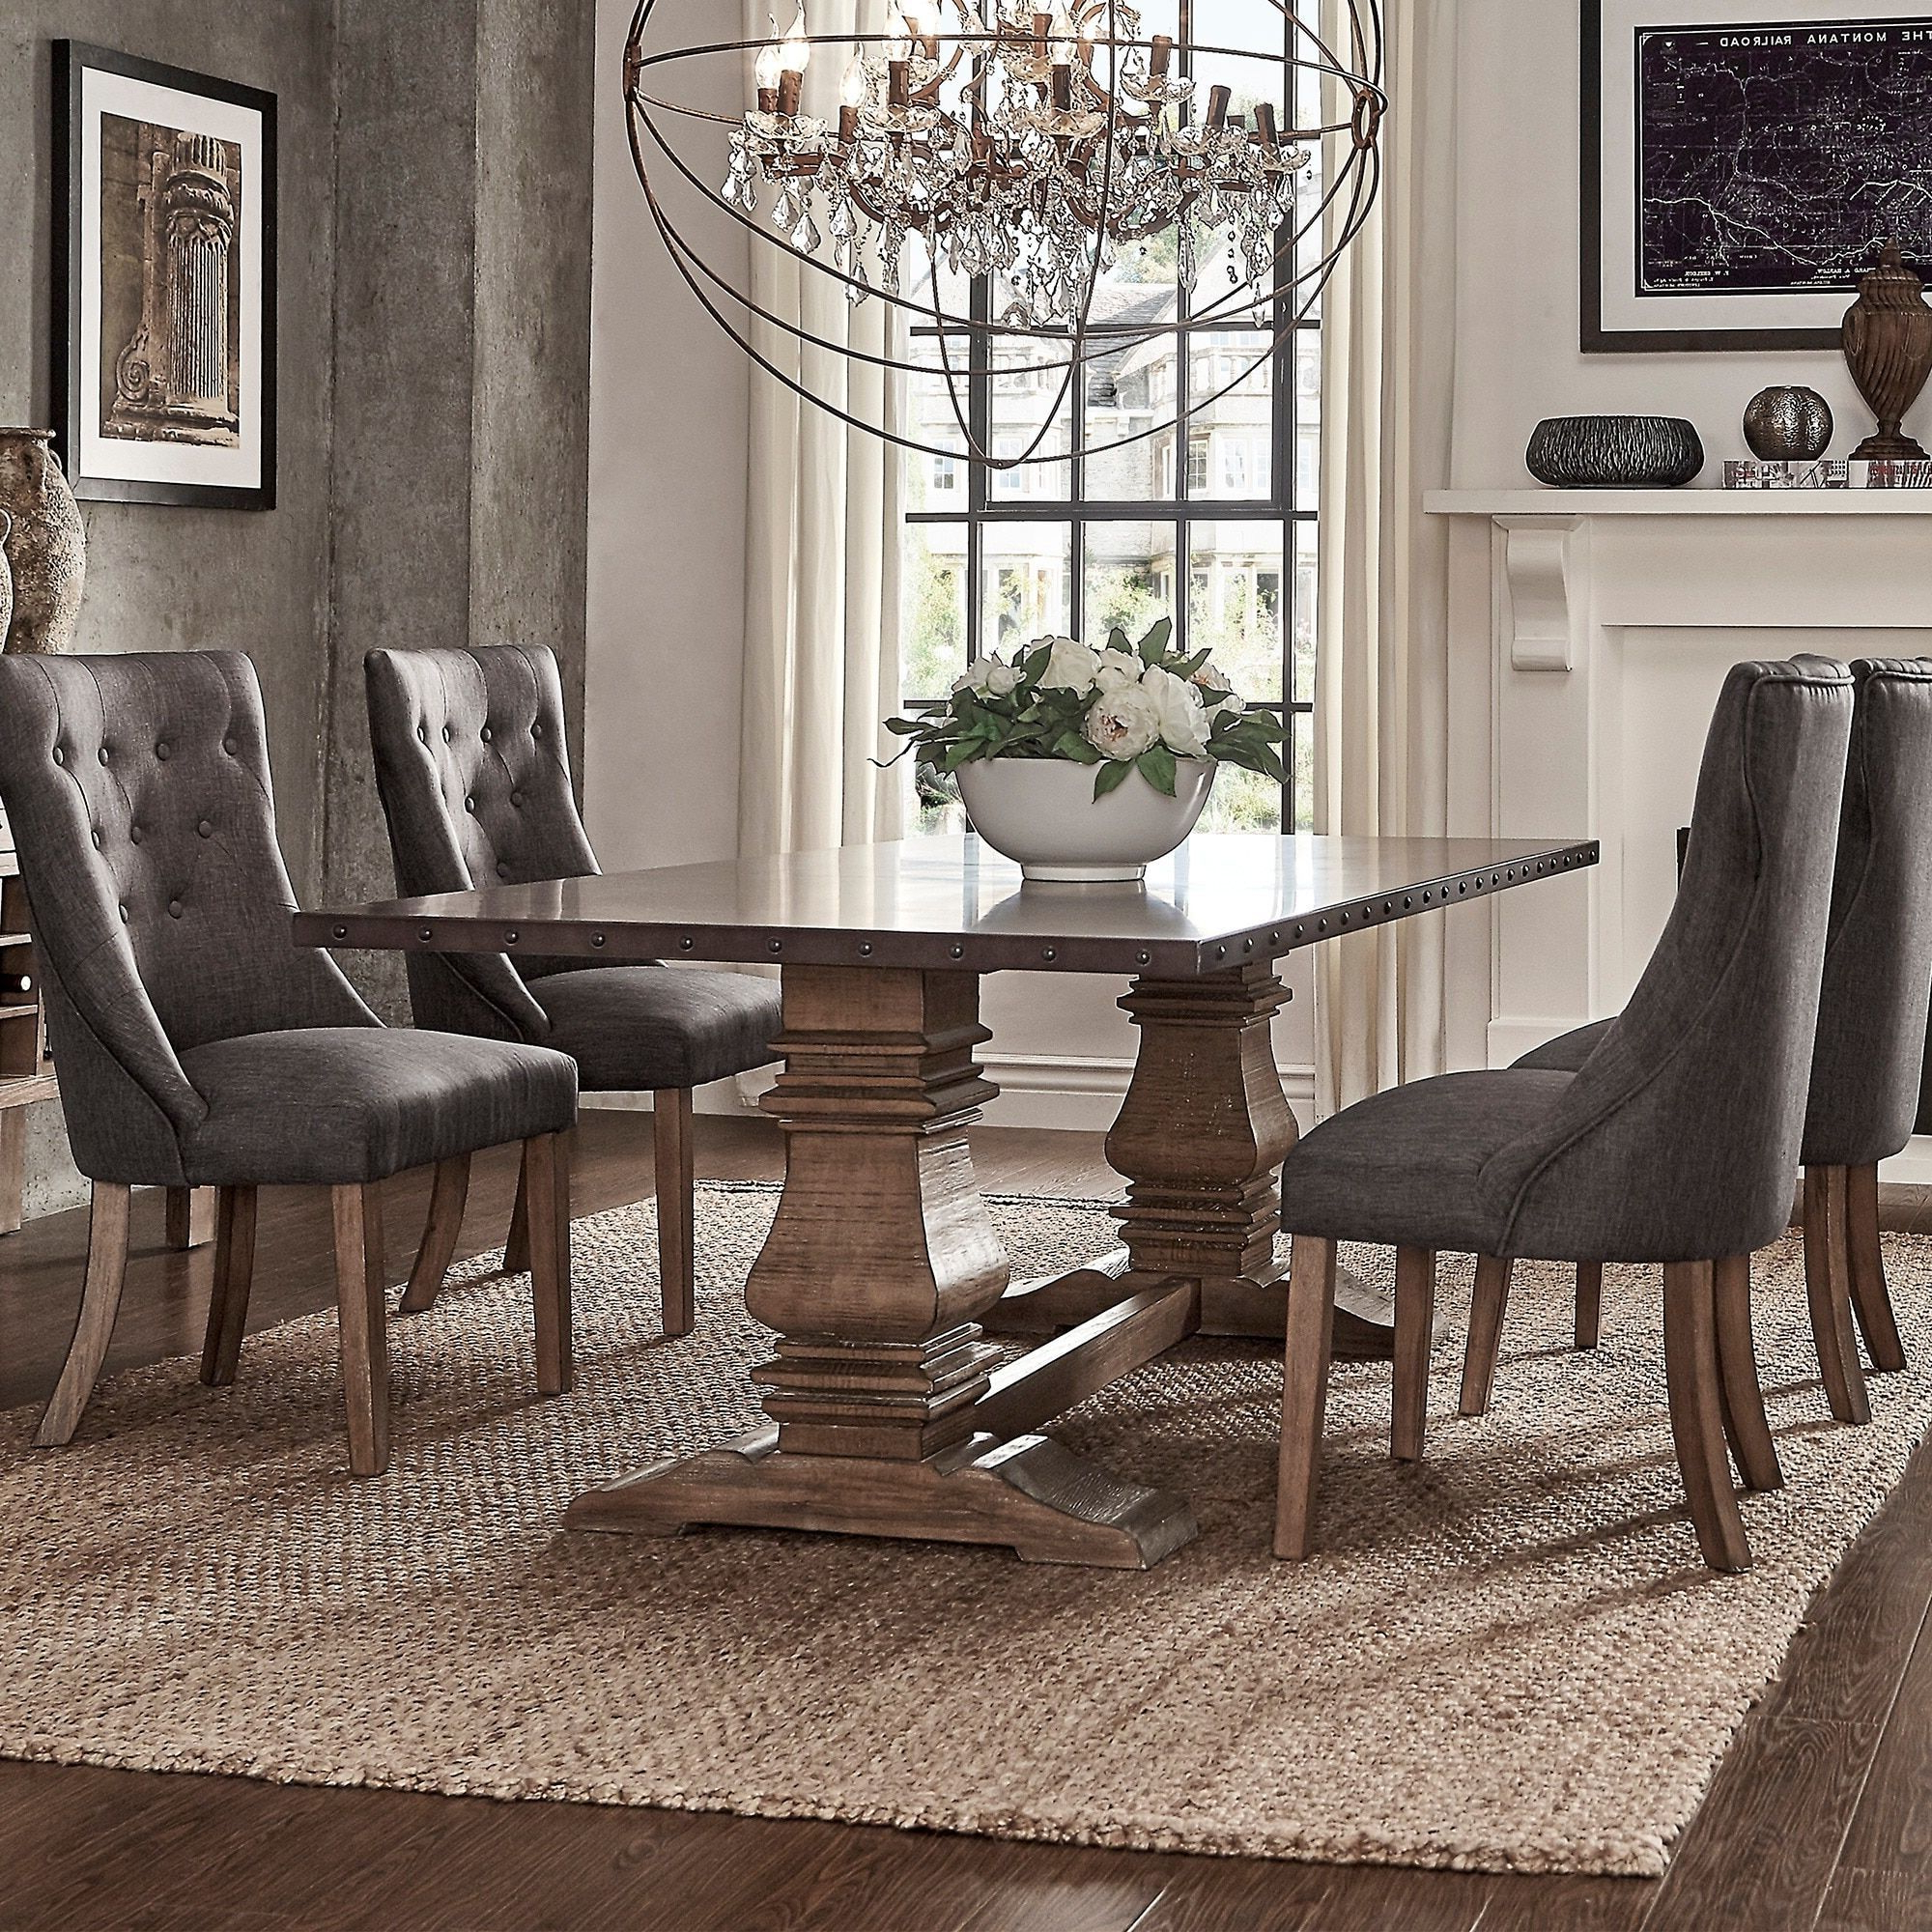 Preferred E1A28 Lorraine Extending Dining Table C Hewn Oak C Pottery For Hewn Oak Lorraine Pedestal Extending Dining Tables (View 16 of 25)